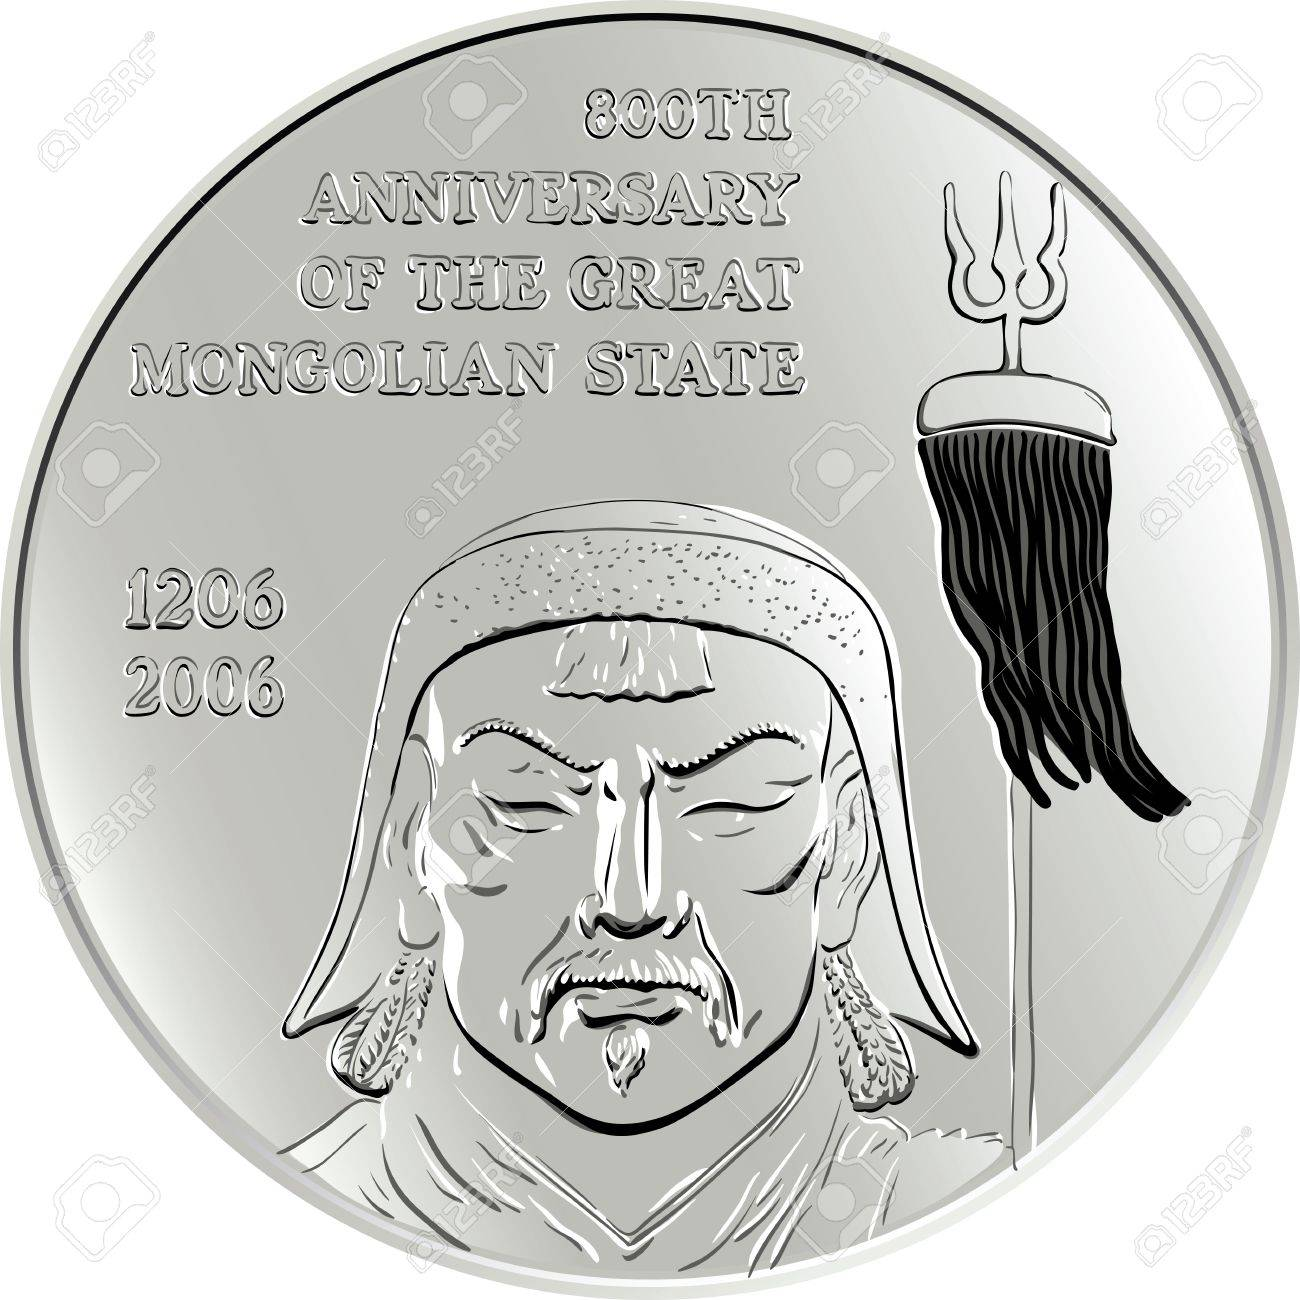 Shiny silver commemorative coin depicting the mongol genghis shiny silver commemorative coin depicting the mongol genghis khan isolated on white background stock vector biocorpaavc Images